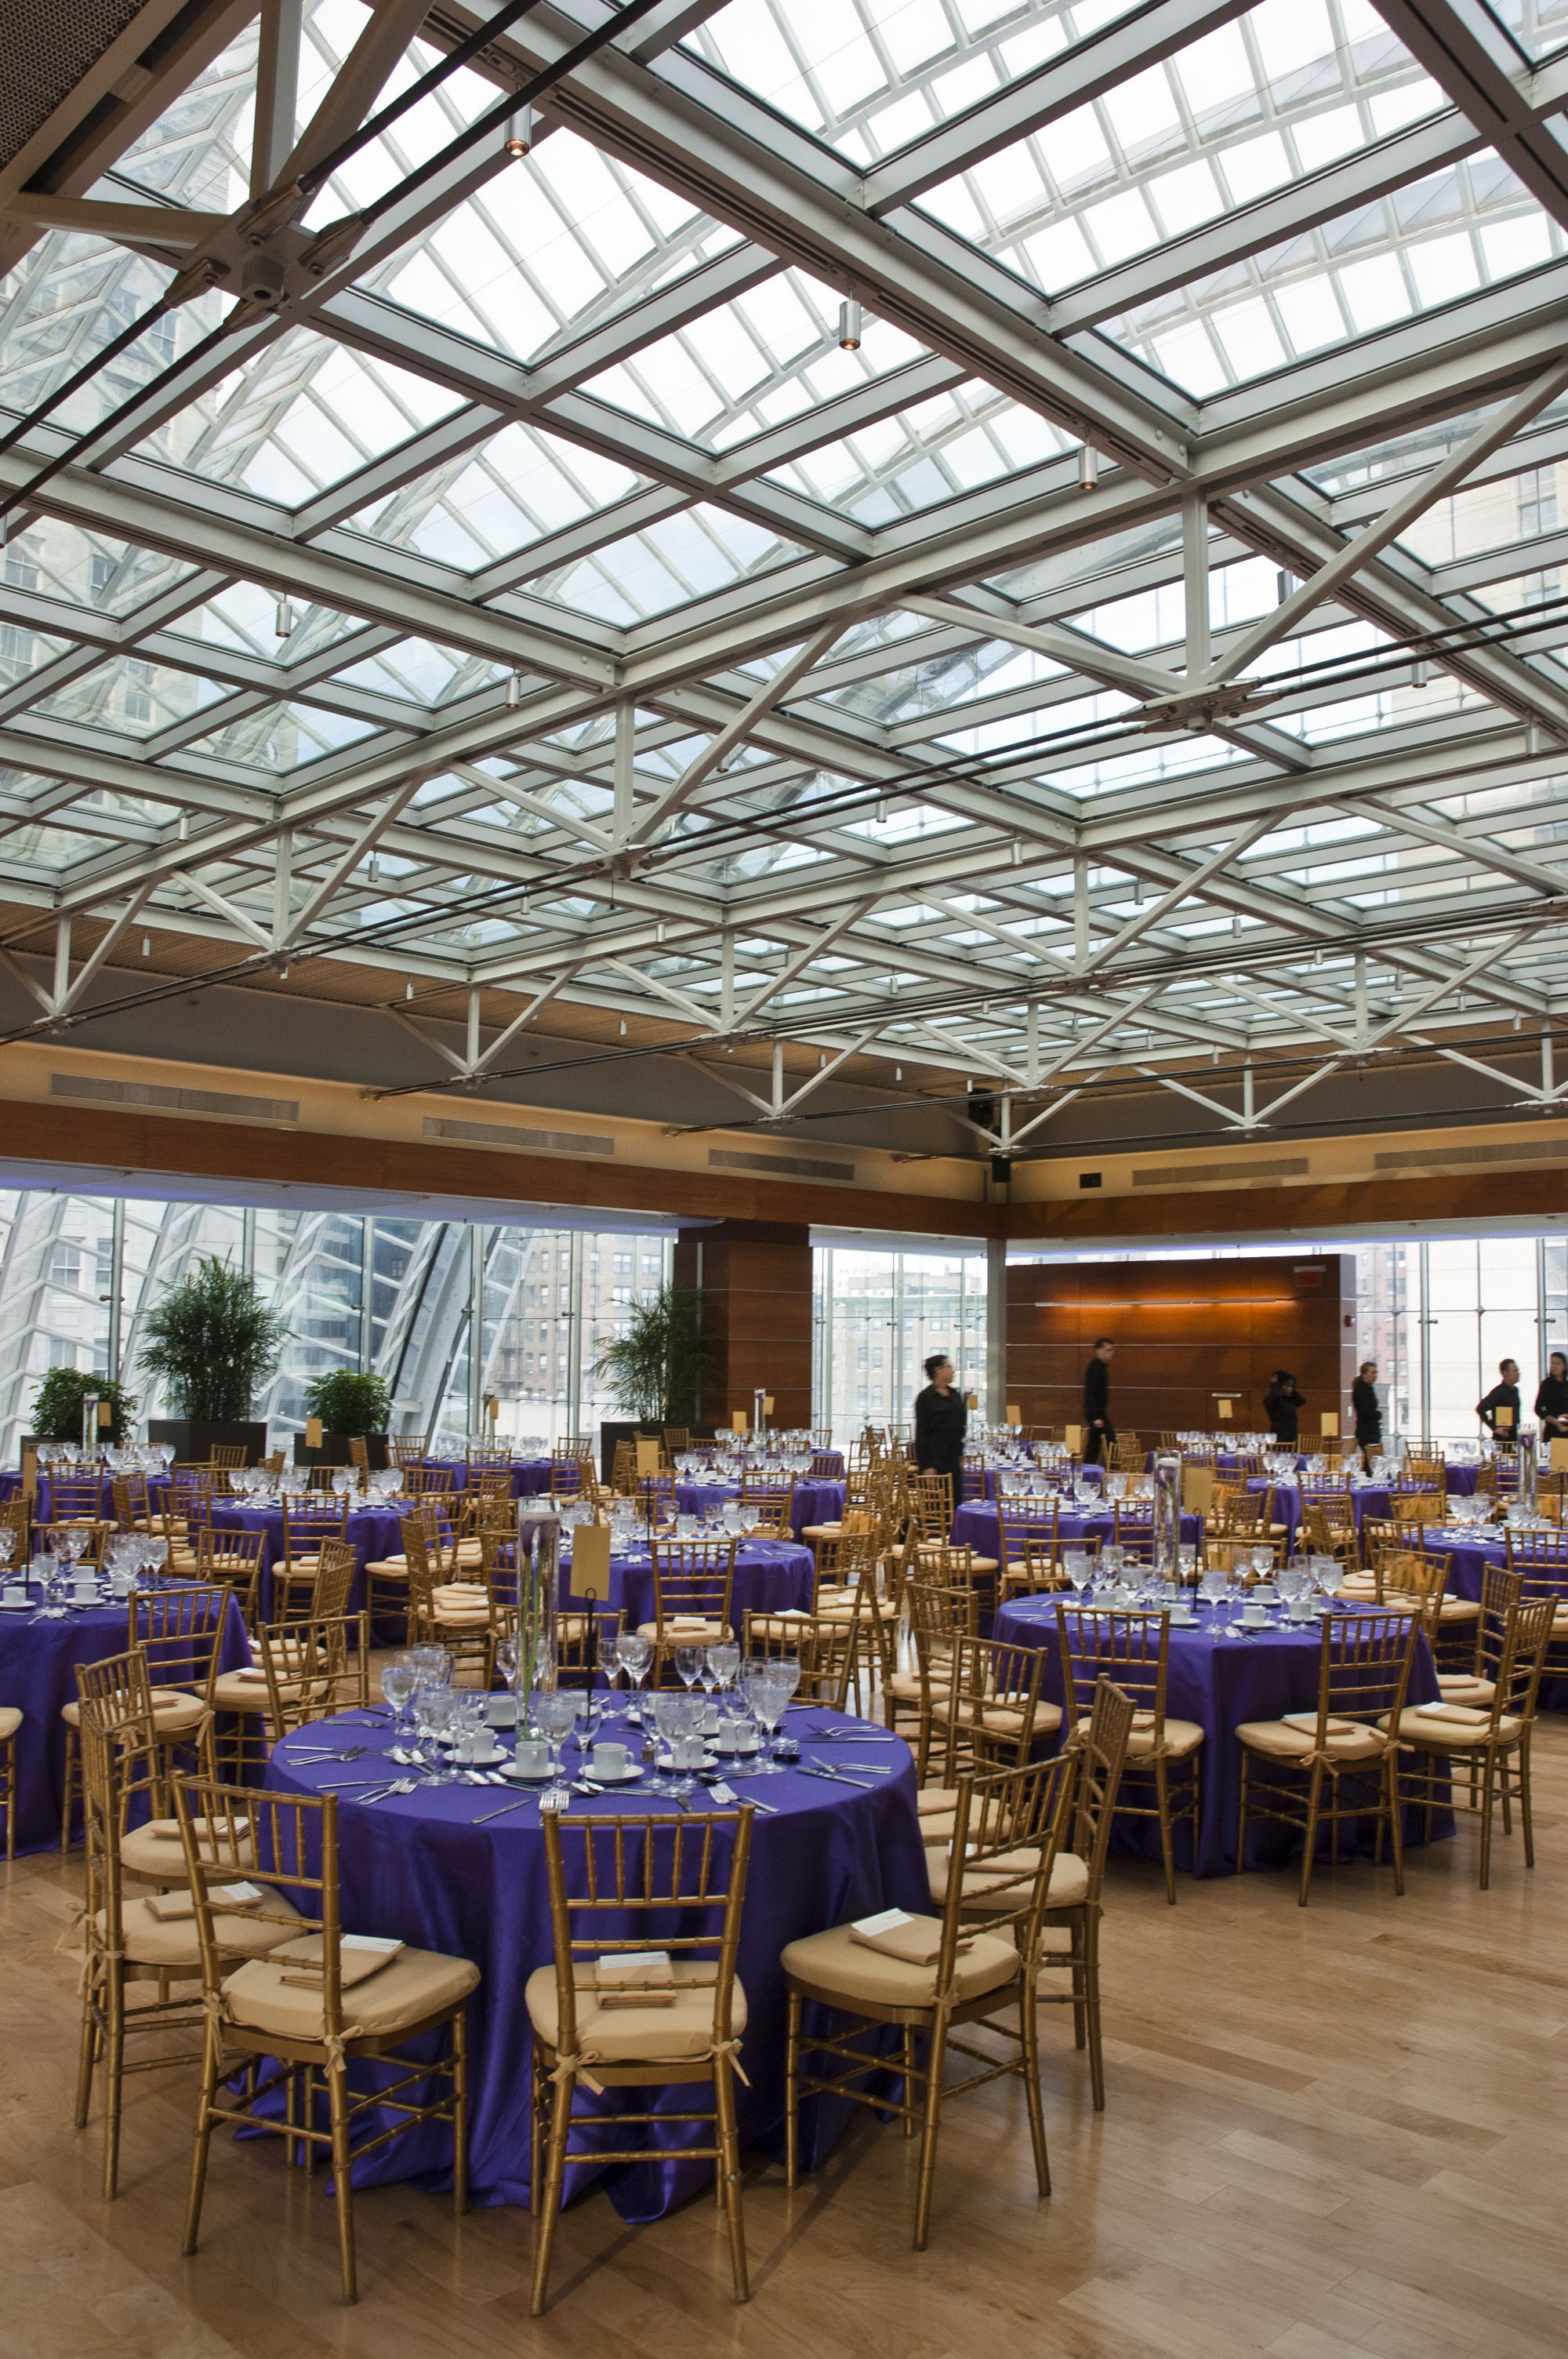 New Philadelphia Wedding Venues: Hotel Monaco & The Kimmel Center's Rooftop Redo